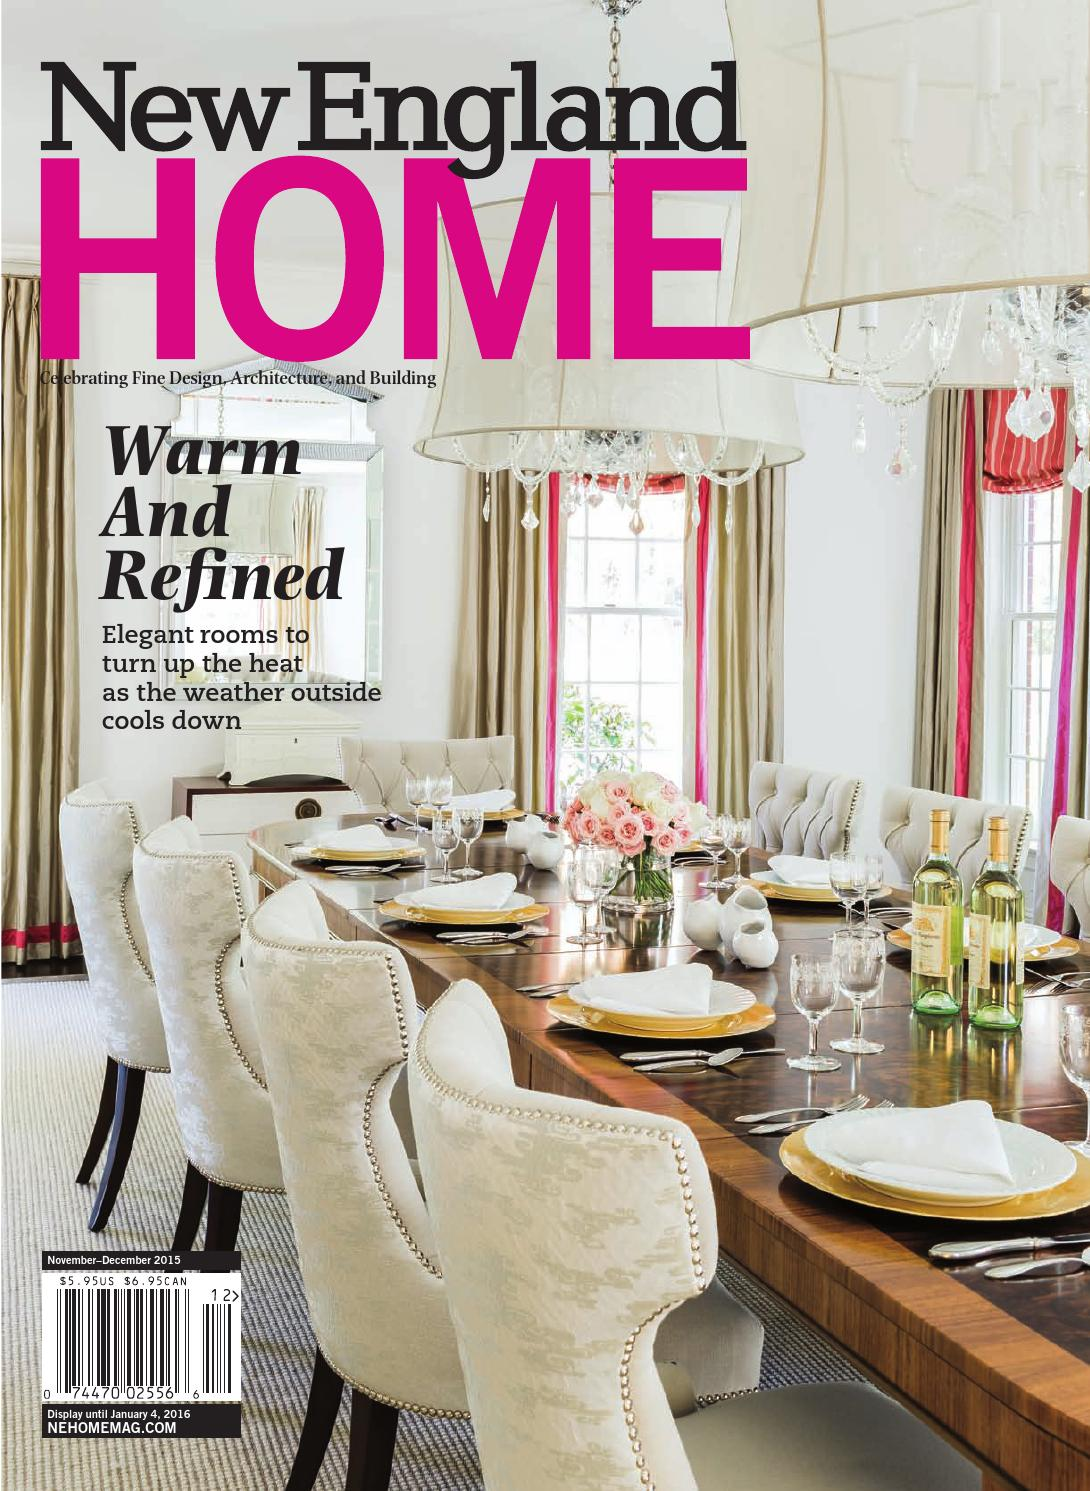 New England Home November December 2015 By Magazine LLC